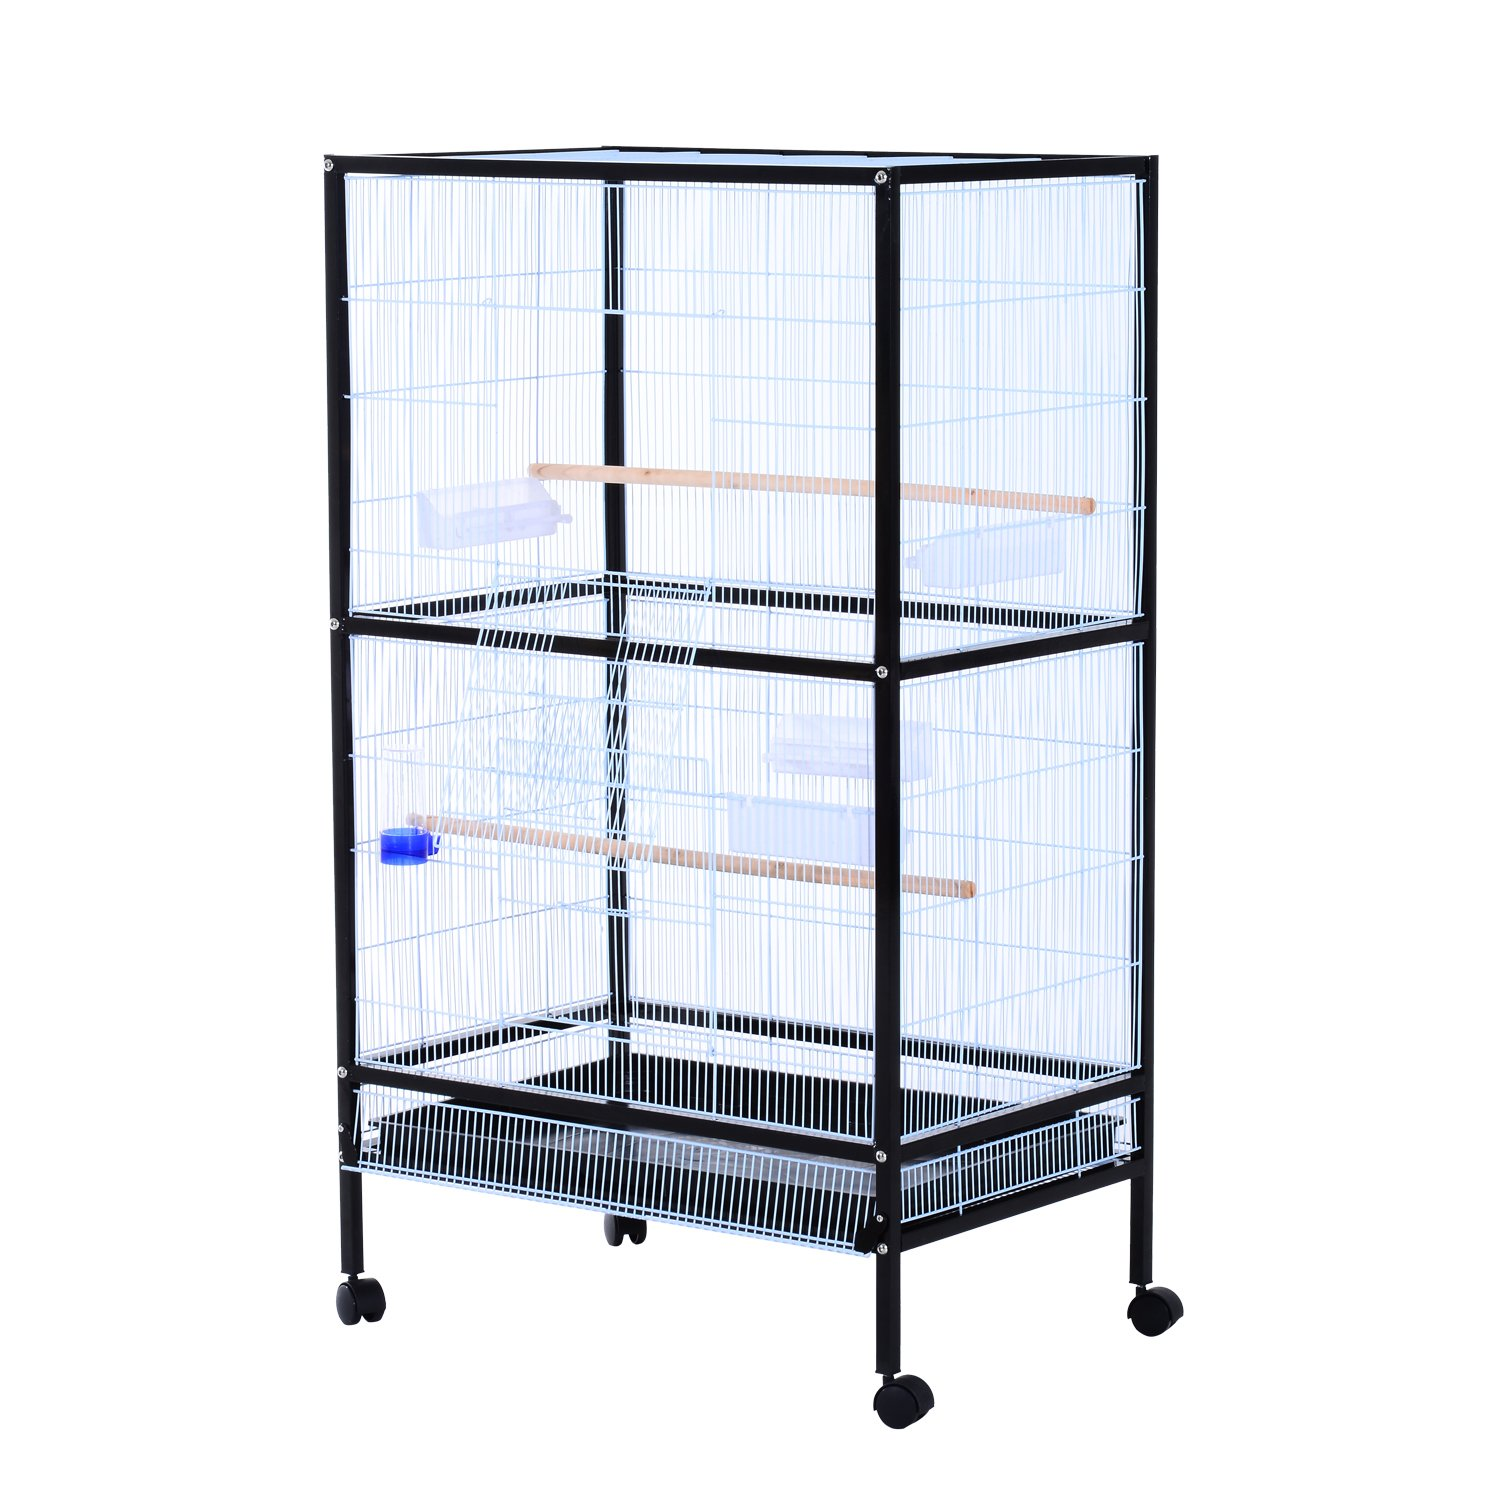 PawHut 30x20.5x54-Inch Bird Cage Parrot Macaw Finch Cockatoo Flight Cage with Wheels Black/White Aosom Canada